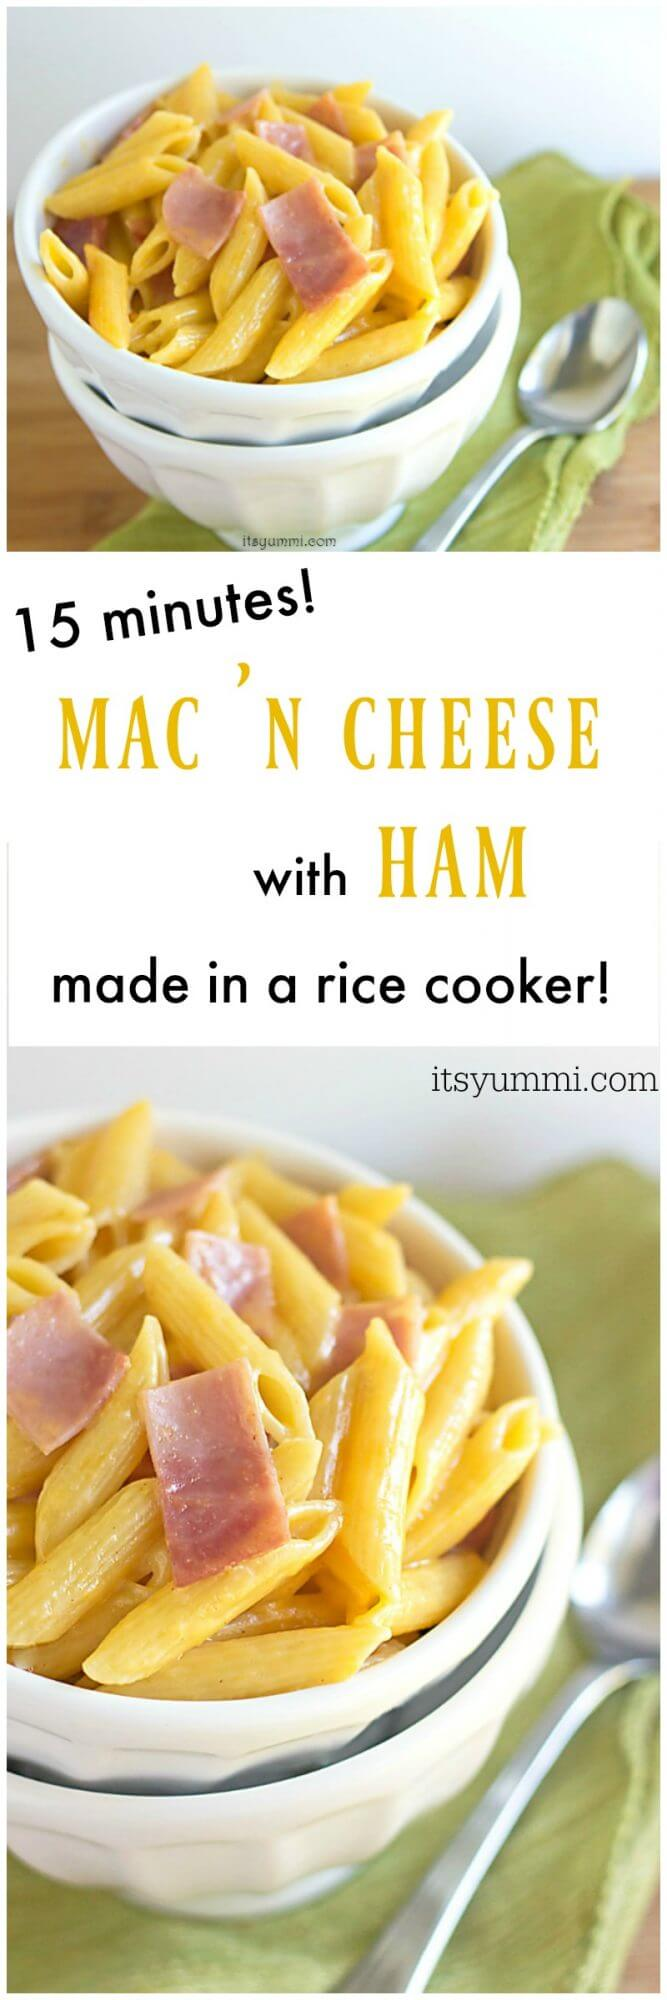 Rice Cooker Ham Macaroni and Cheese - This delicious comfort food dinner is made from start to finish in a @hamiltonbeach rice cooker, and it takes just 15 minutes! Get the recipe on itsyummi.com #hamiltonbeachricecooker (sponsored)